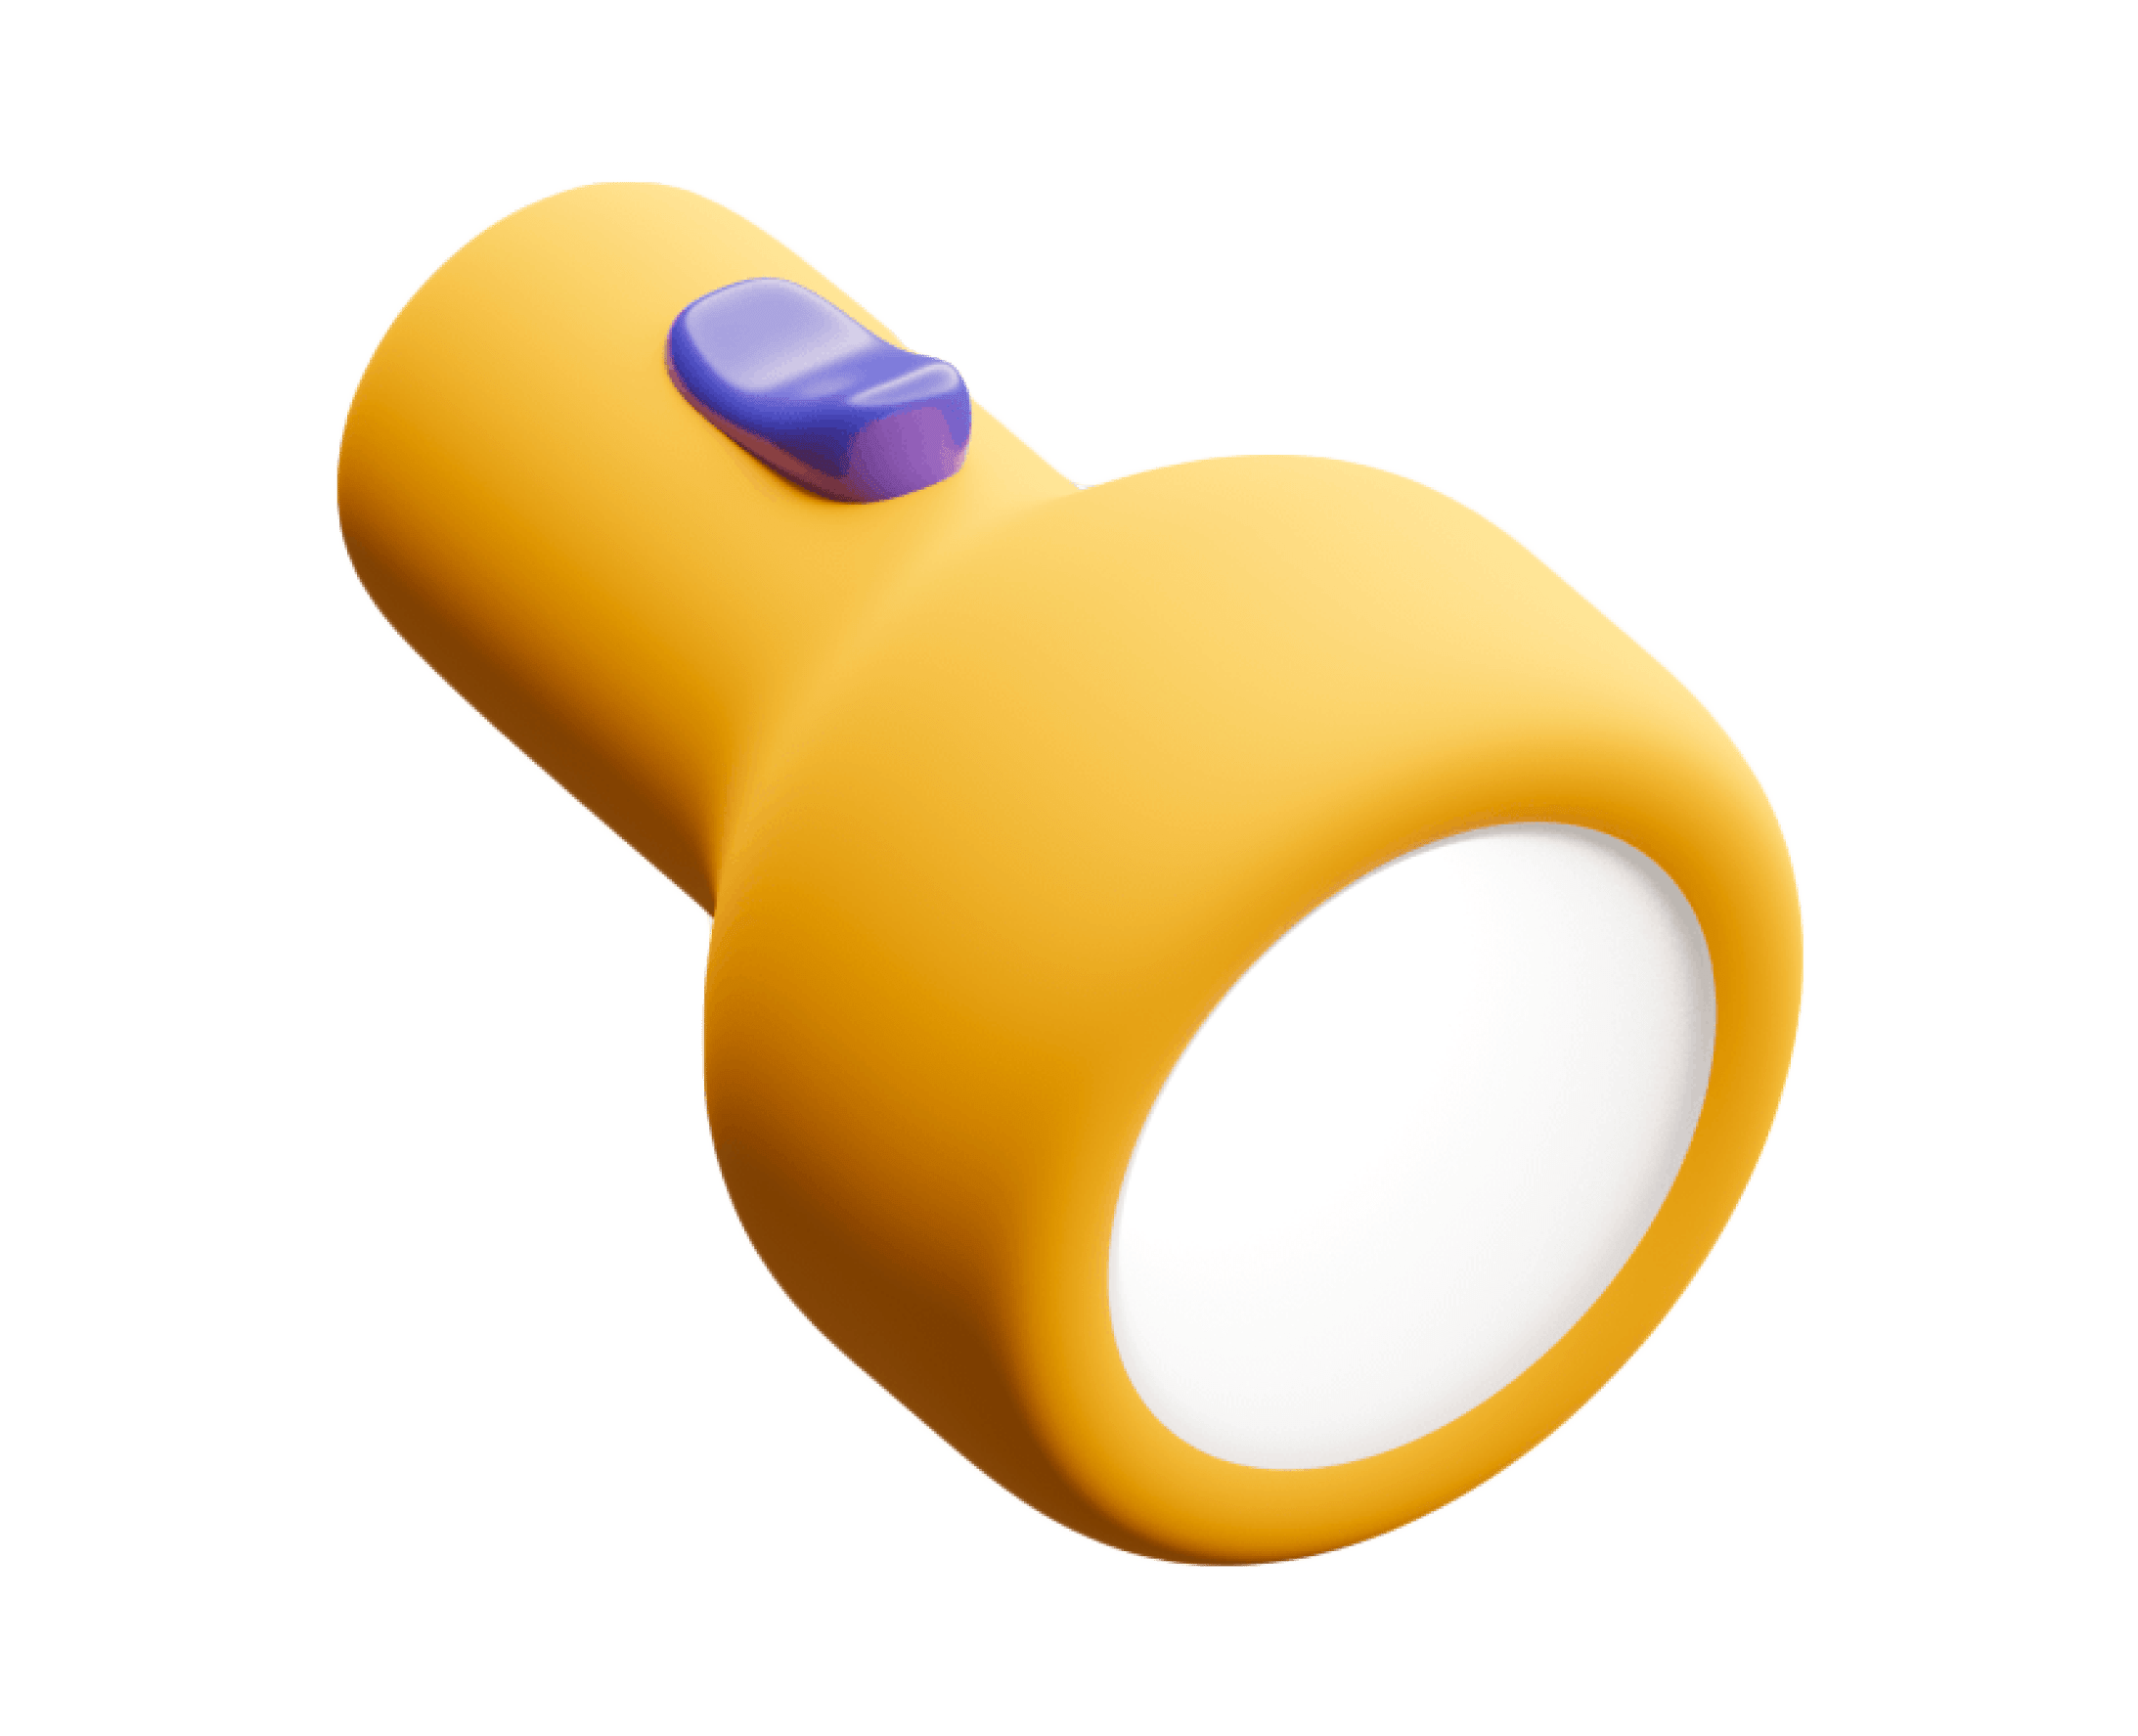 3D Torch Image